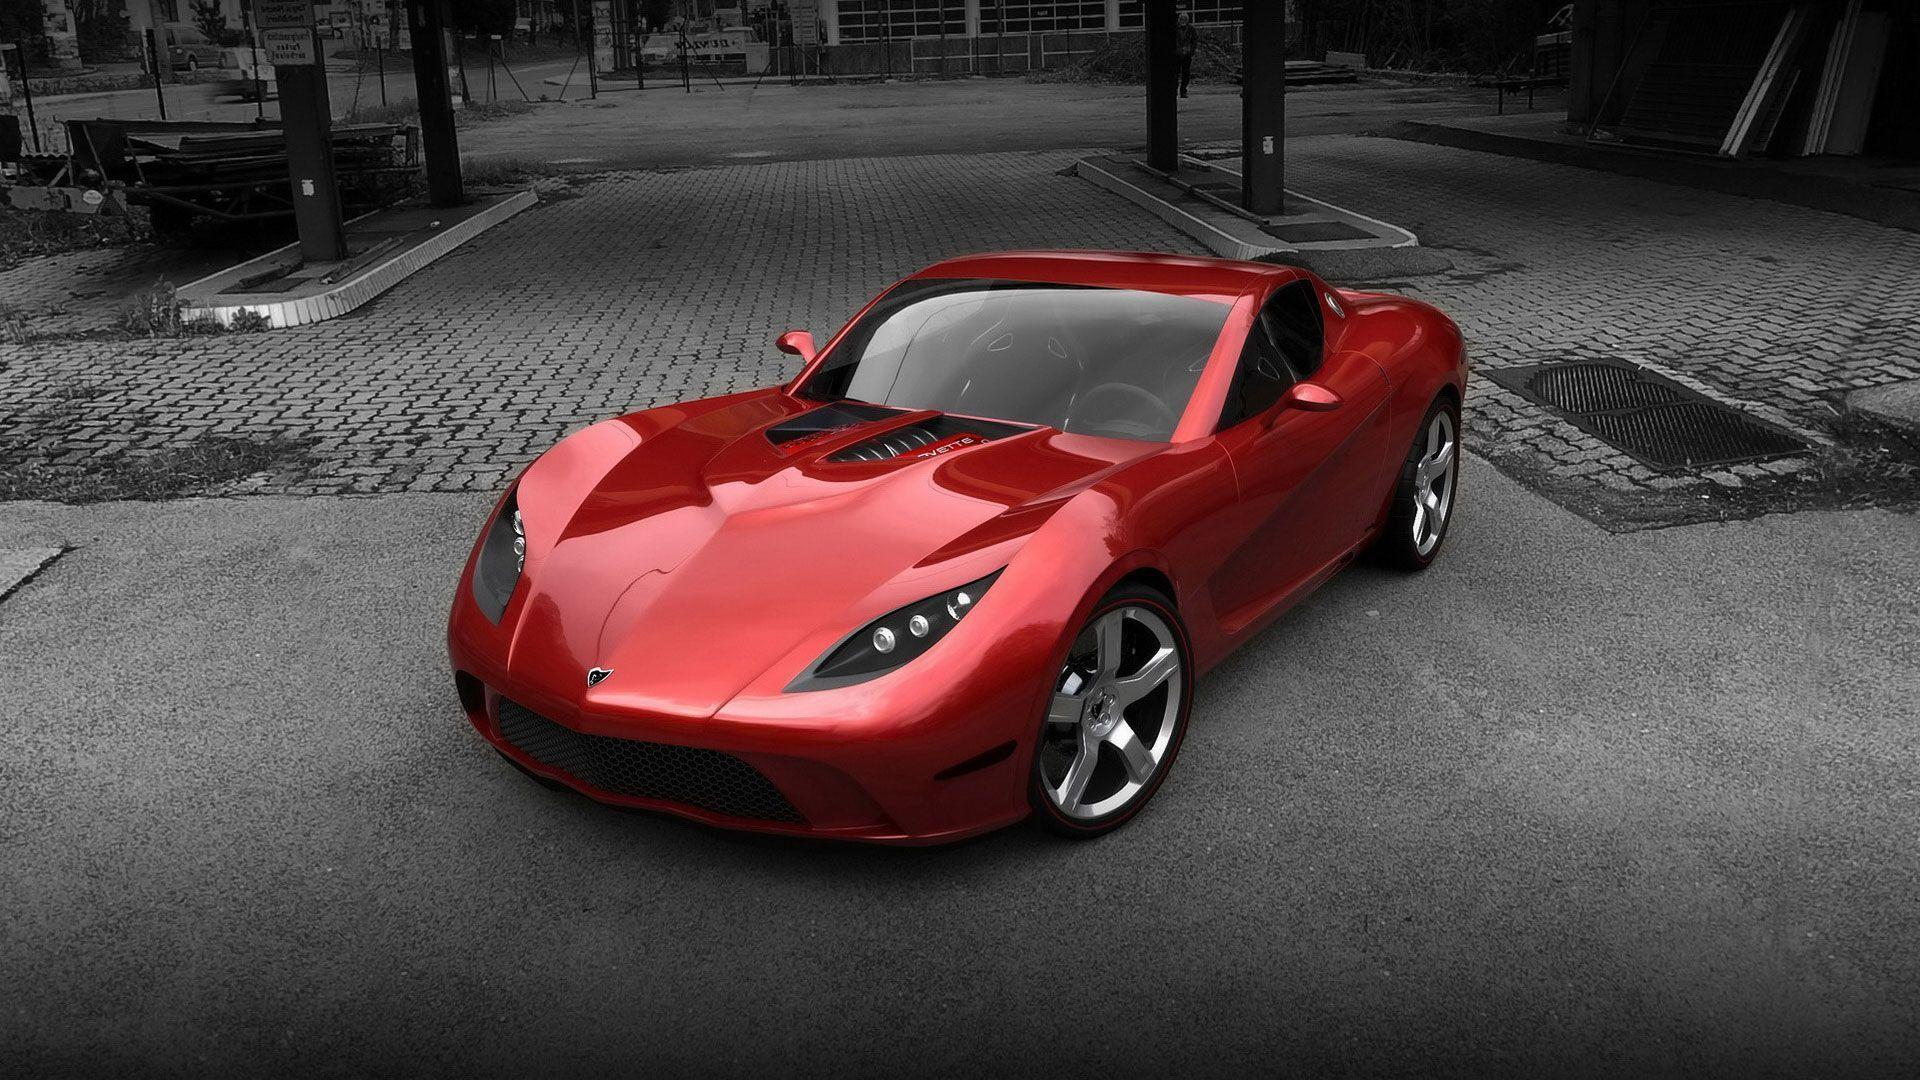 corvette wallpaper hd - photo #10